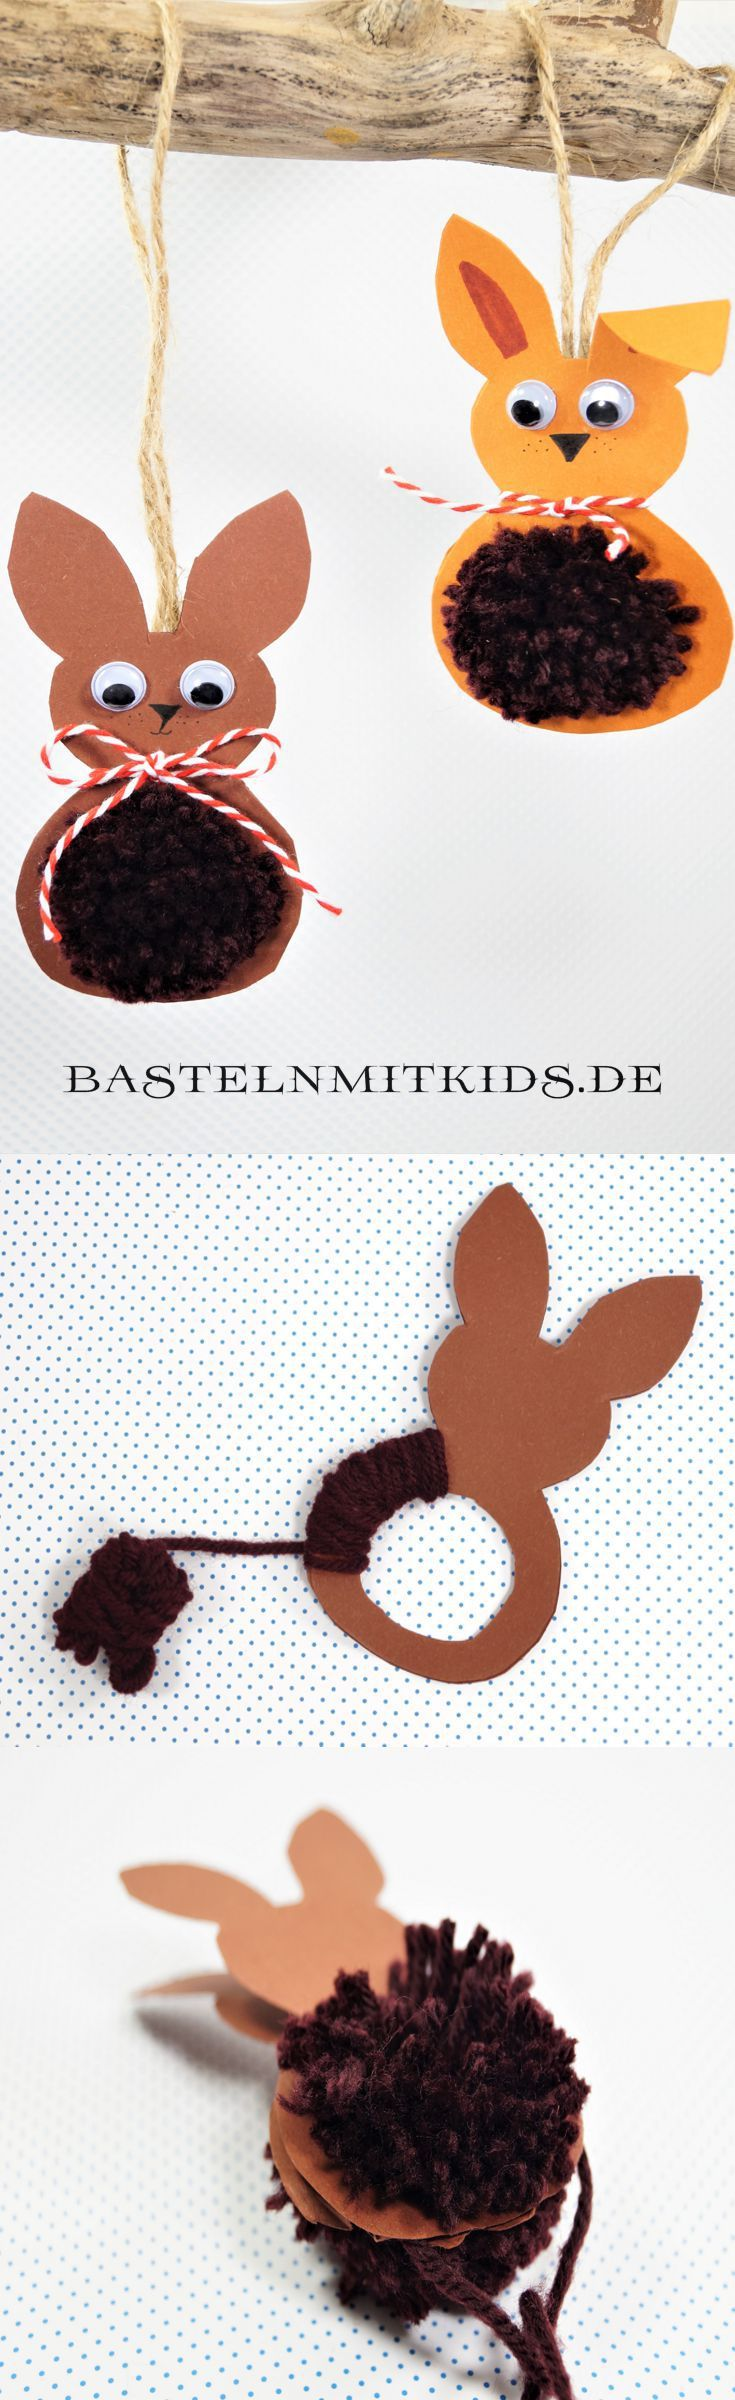 osterhasen basteln mit kindern und kleinkindern basteln mit kindern basteln osternest. Black Bedroom Furniture Sets. Home Design Ideas